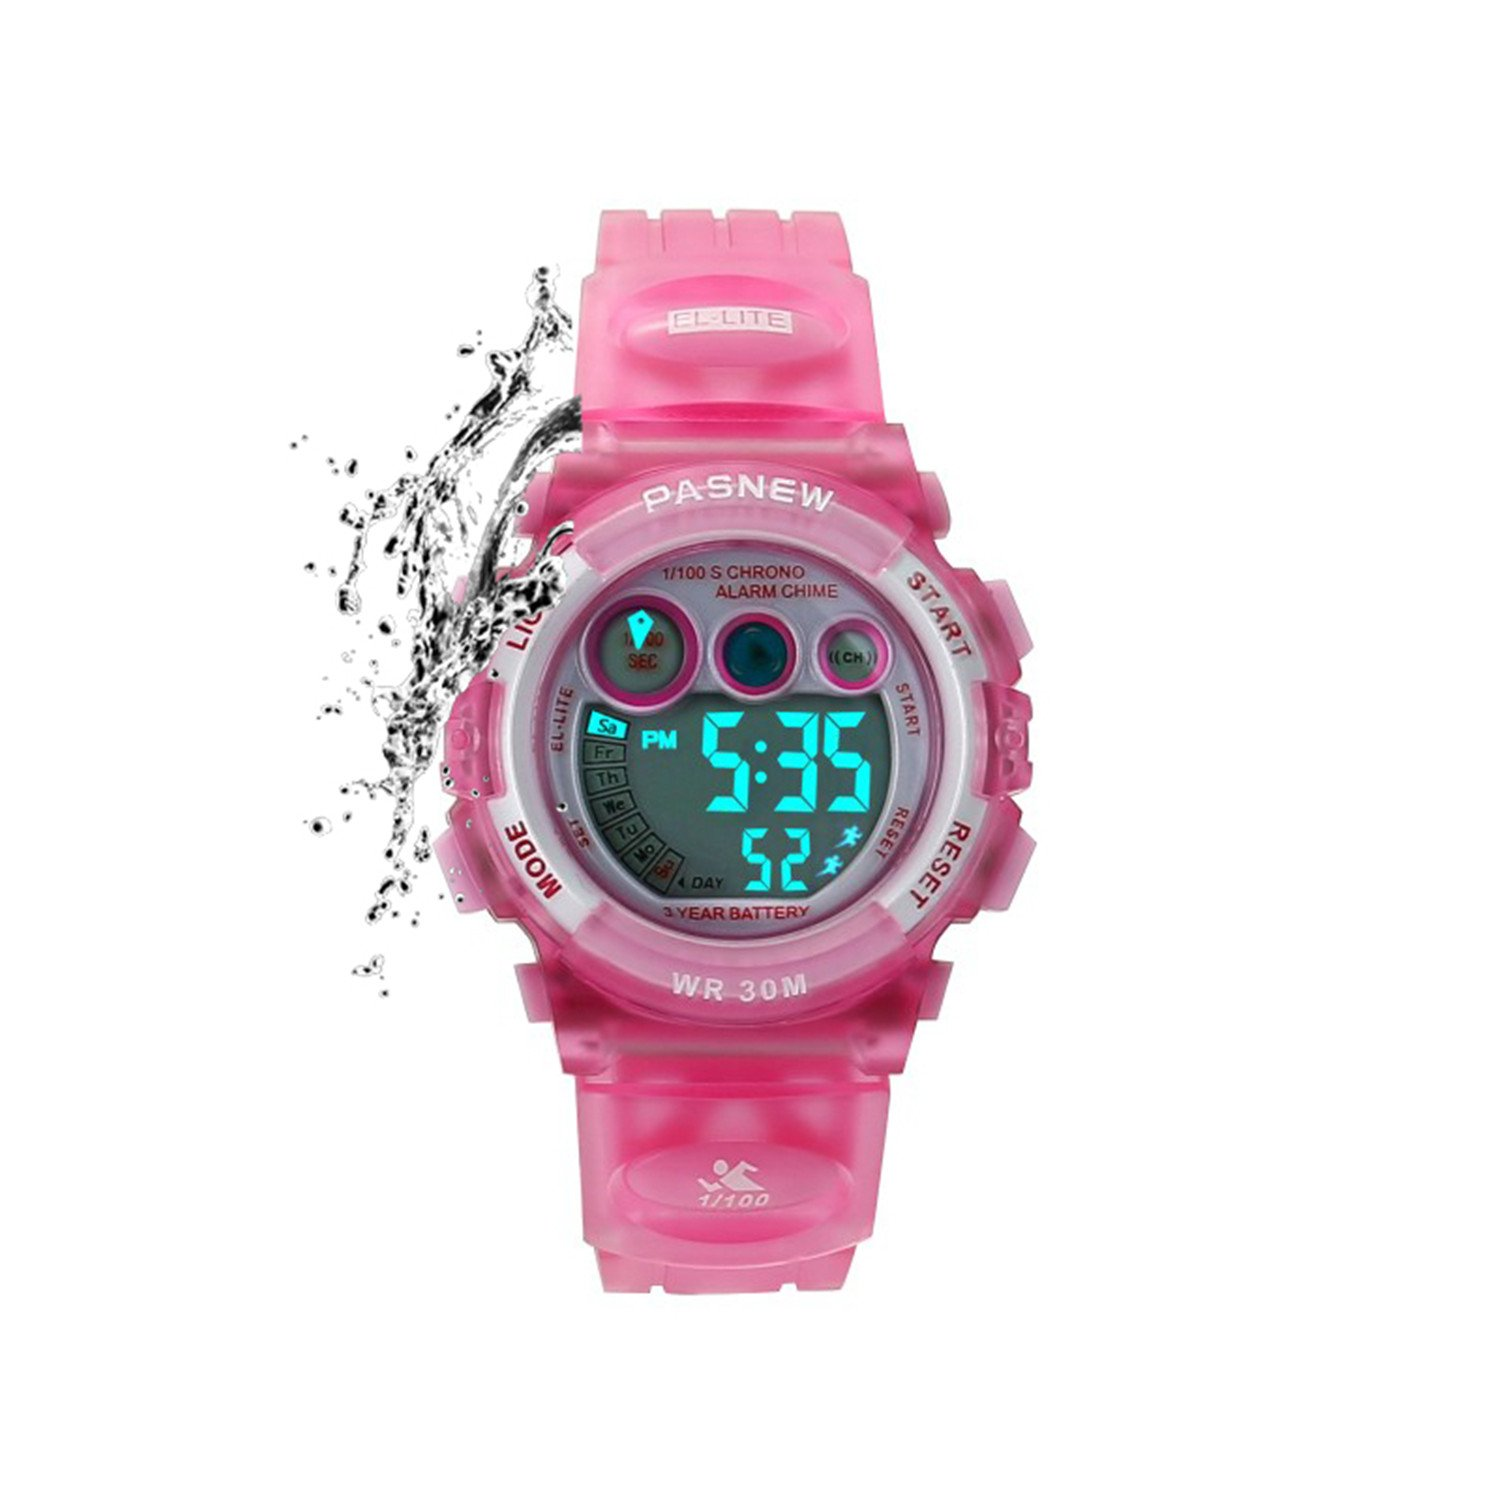 Kids Sports Watches Children for Girls Boys Waterproof Military Dual Display LED Kids Watch Pink